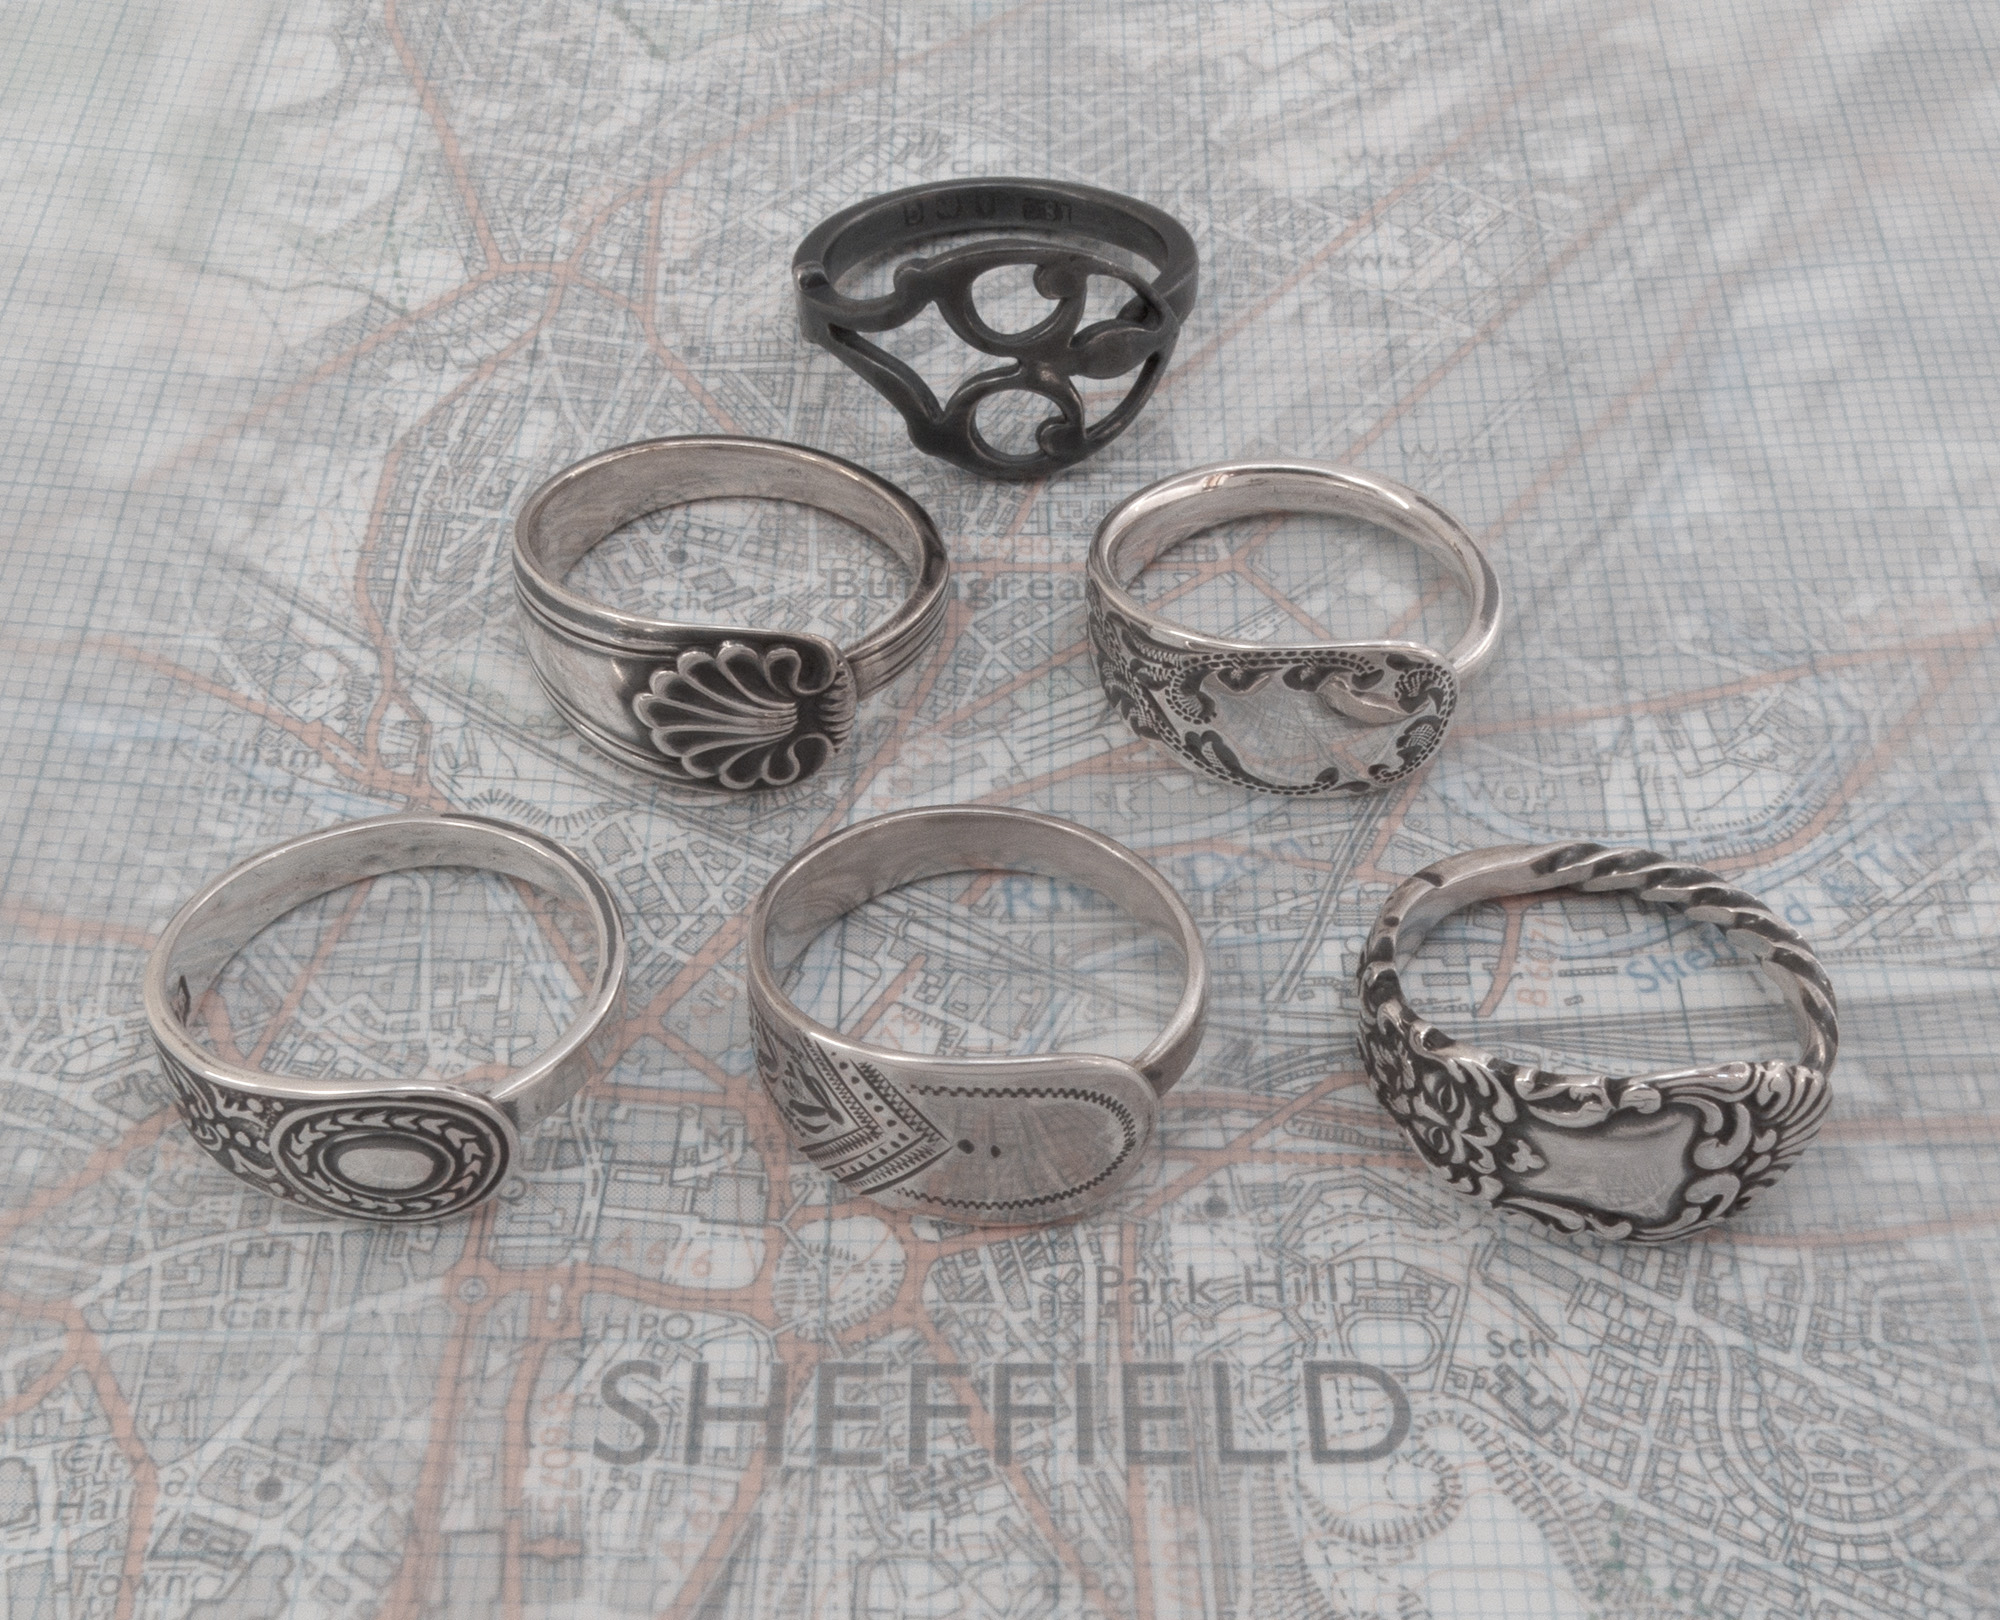 New Ring Designs in the Milomade shop 2016